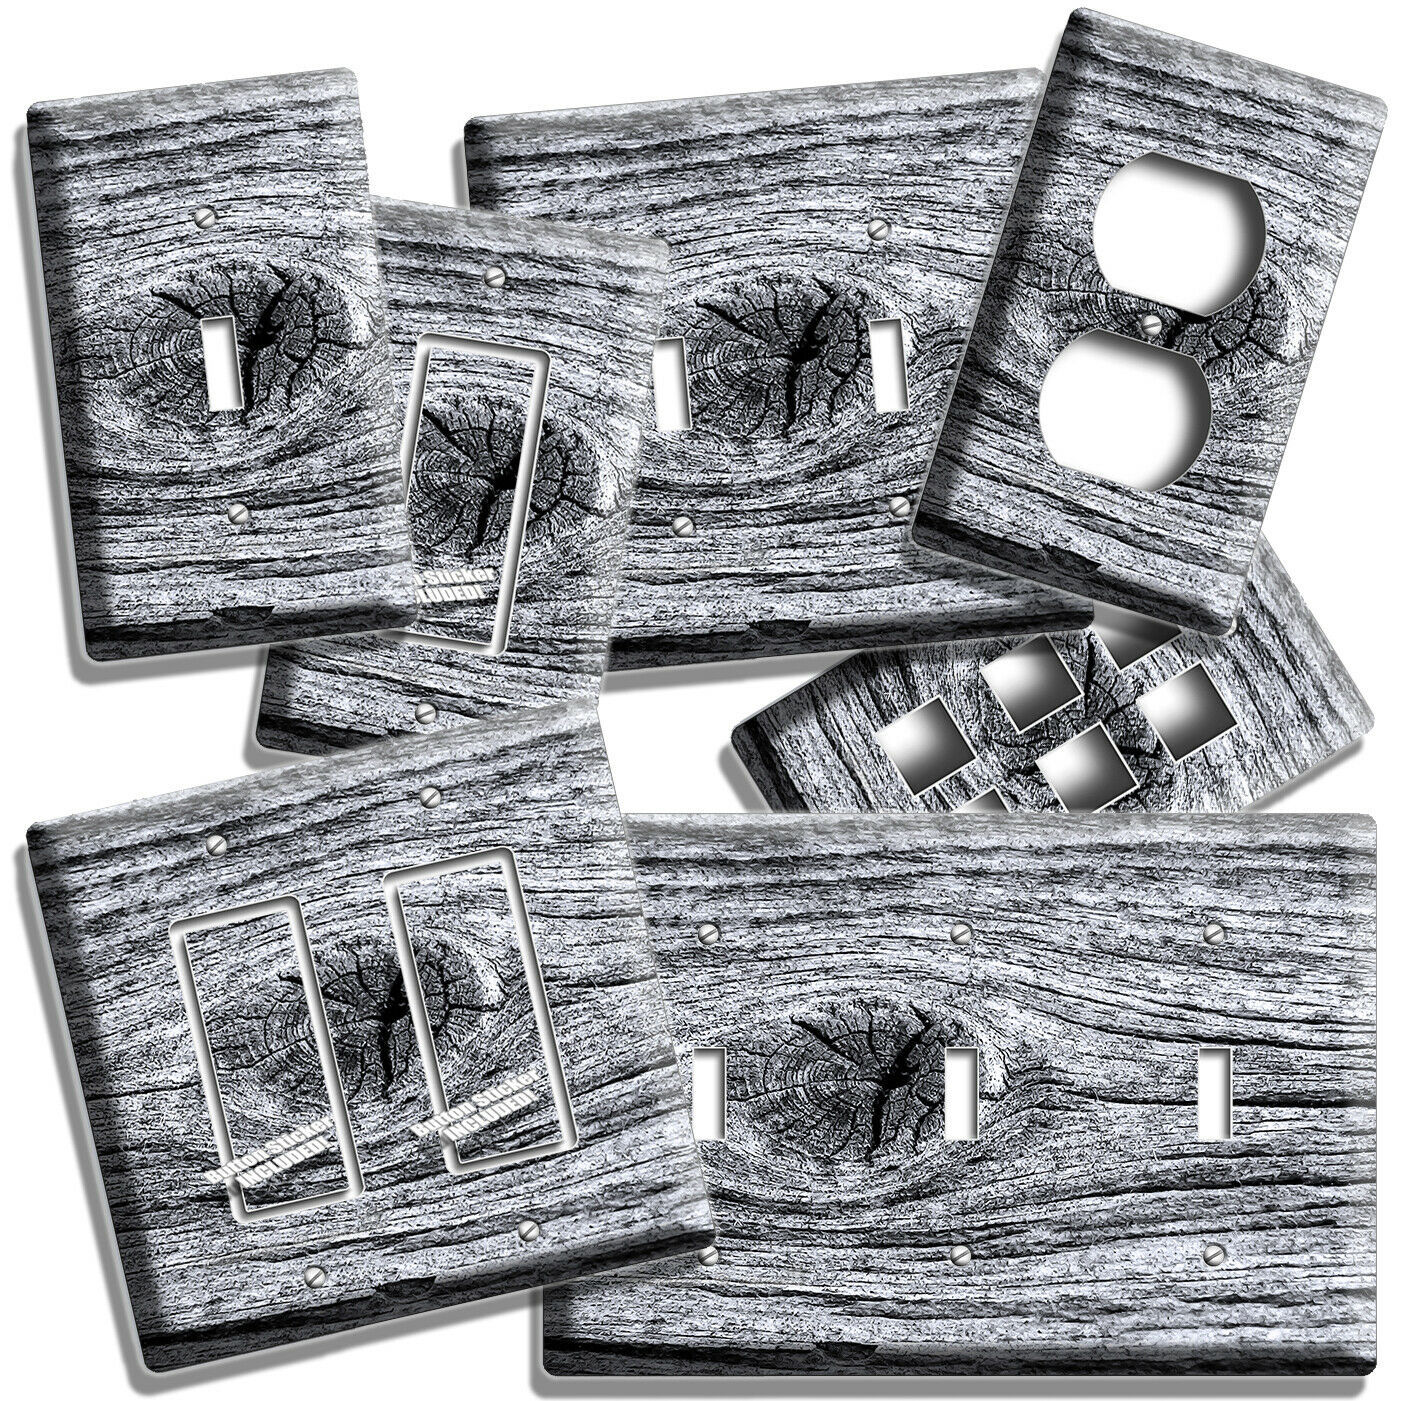 Primary image for WEATHERED AGED WOOD EYE RUSTIC LOOK LIGHT SWITCH PLATES OUTLET ROOM CABIN DECOR